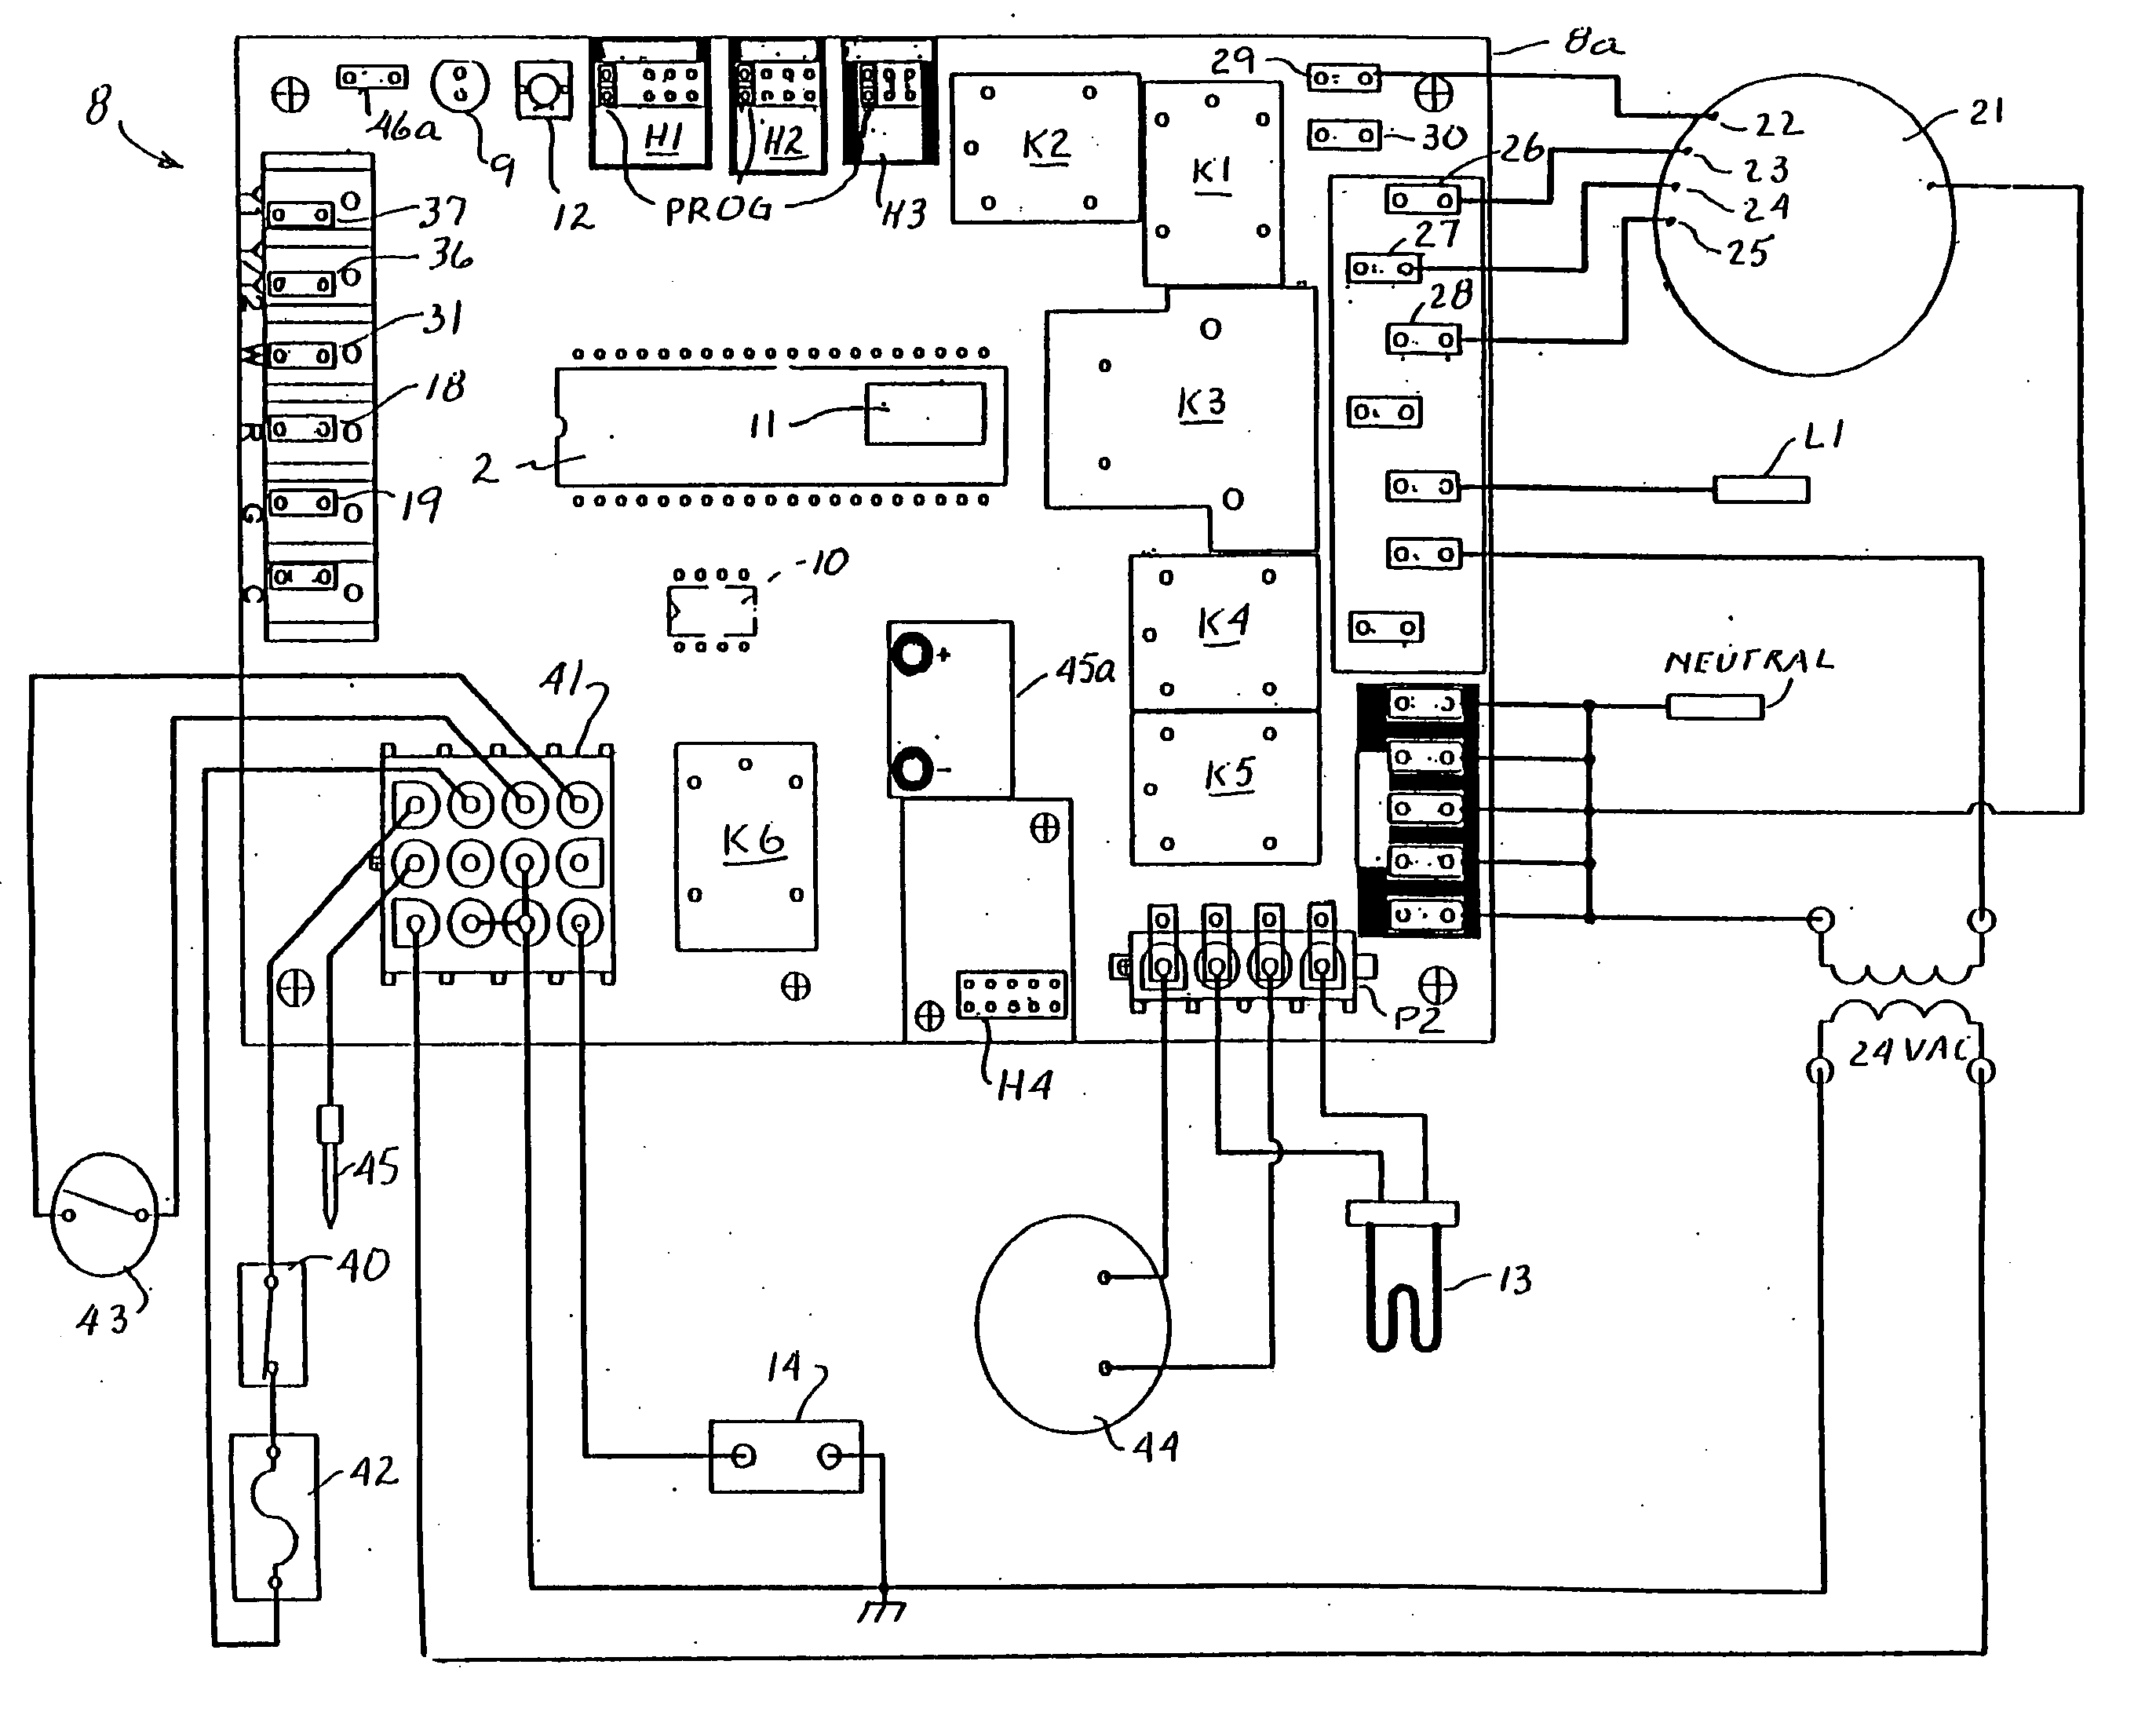 hight resolution of unique old gas furnace wiring diagram diagram diagramsample diagramtemplate wiringdiagram diagramchart